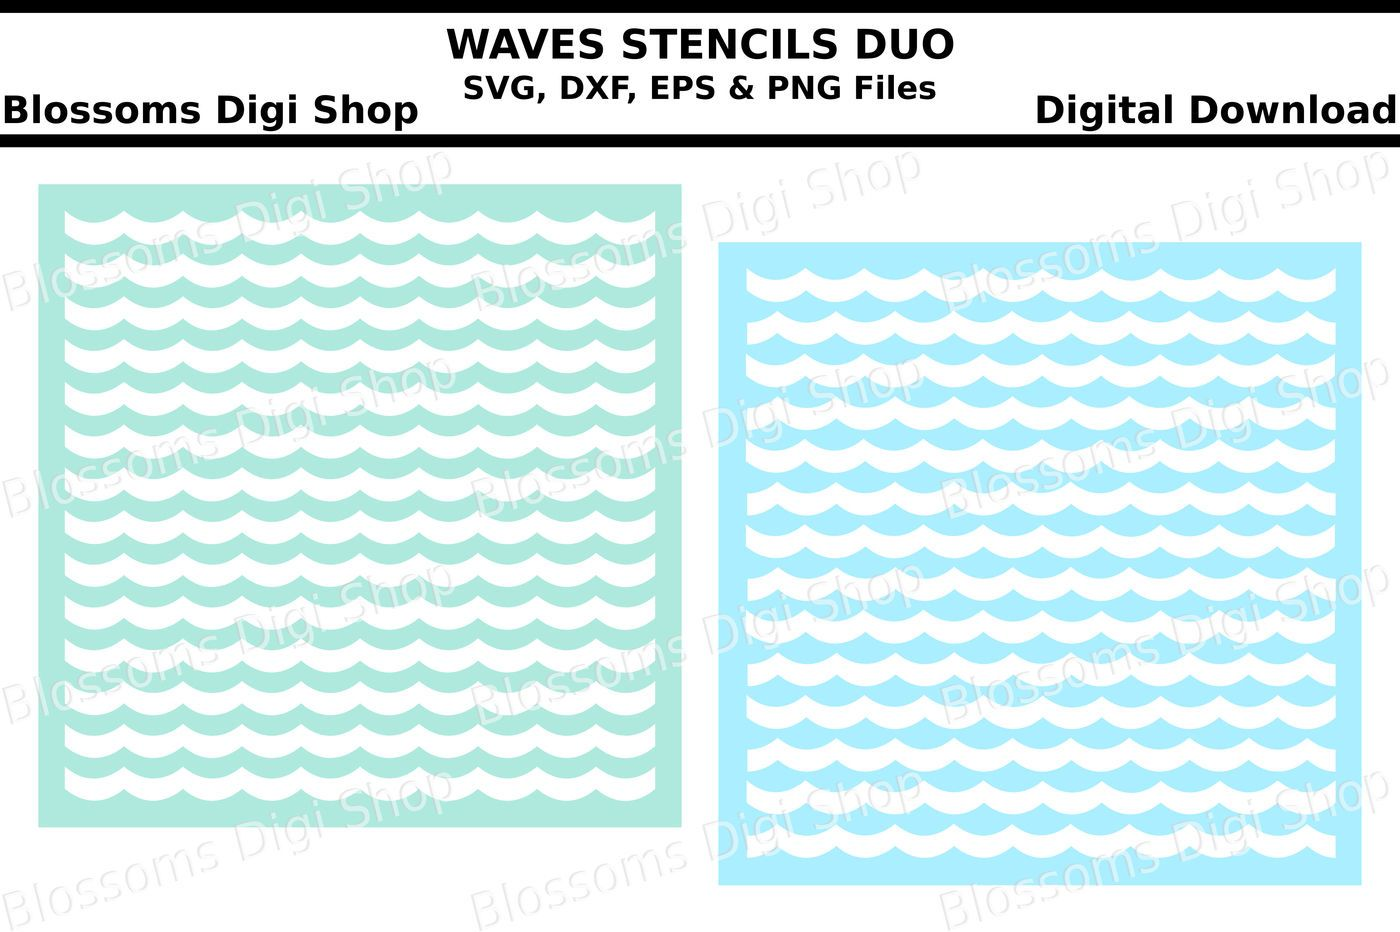 Waves stencil duo SVG, DXF, EPS and PNG cut files By